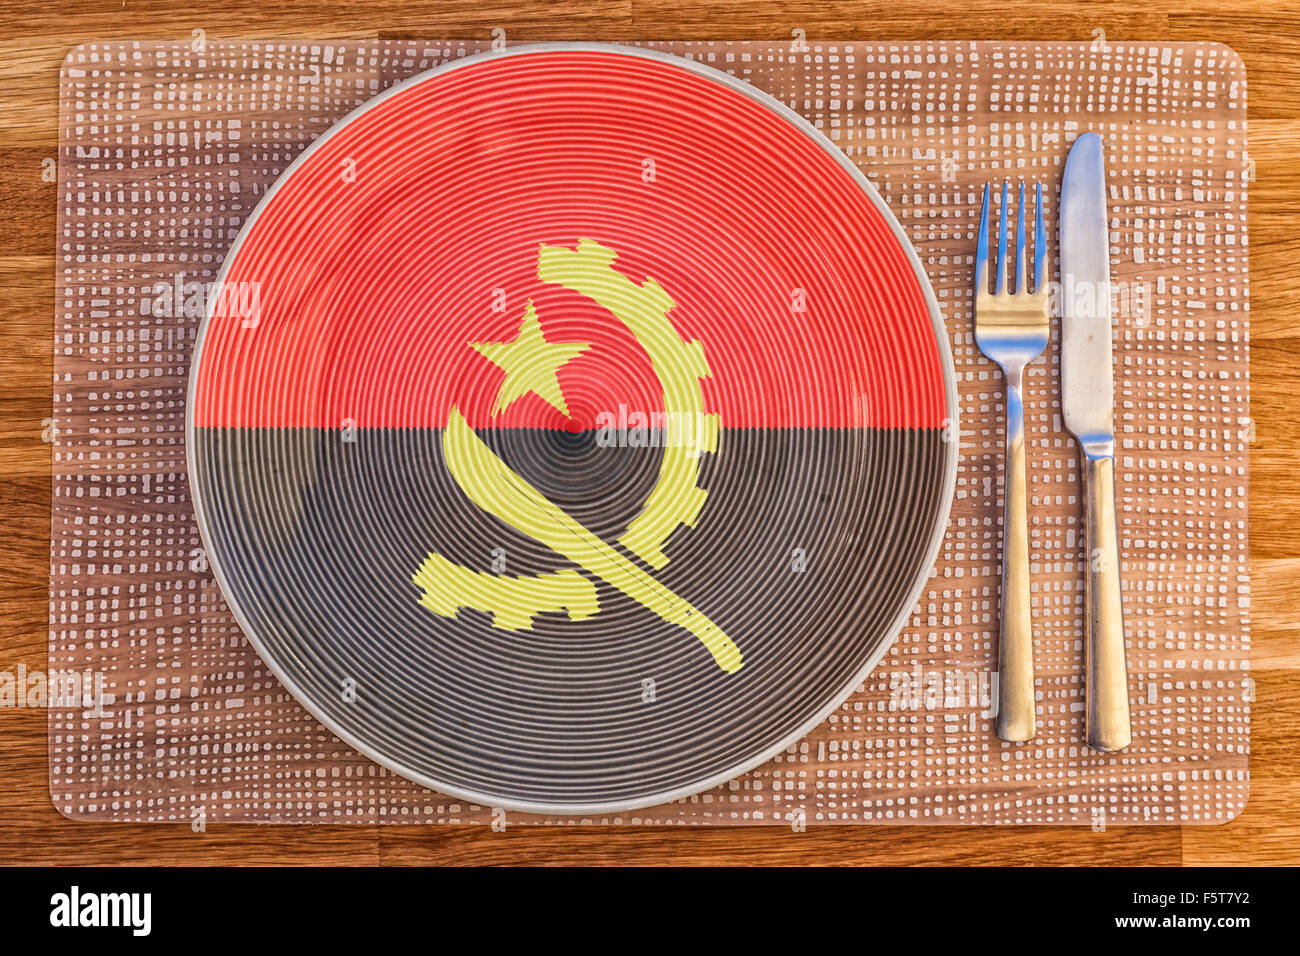 Dinner plate with the flag of Angola on it for your international food and drink concepts. - Stock Image